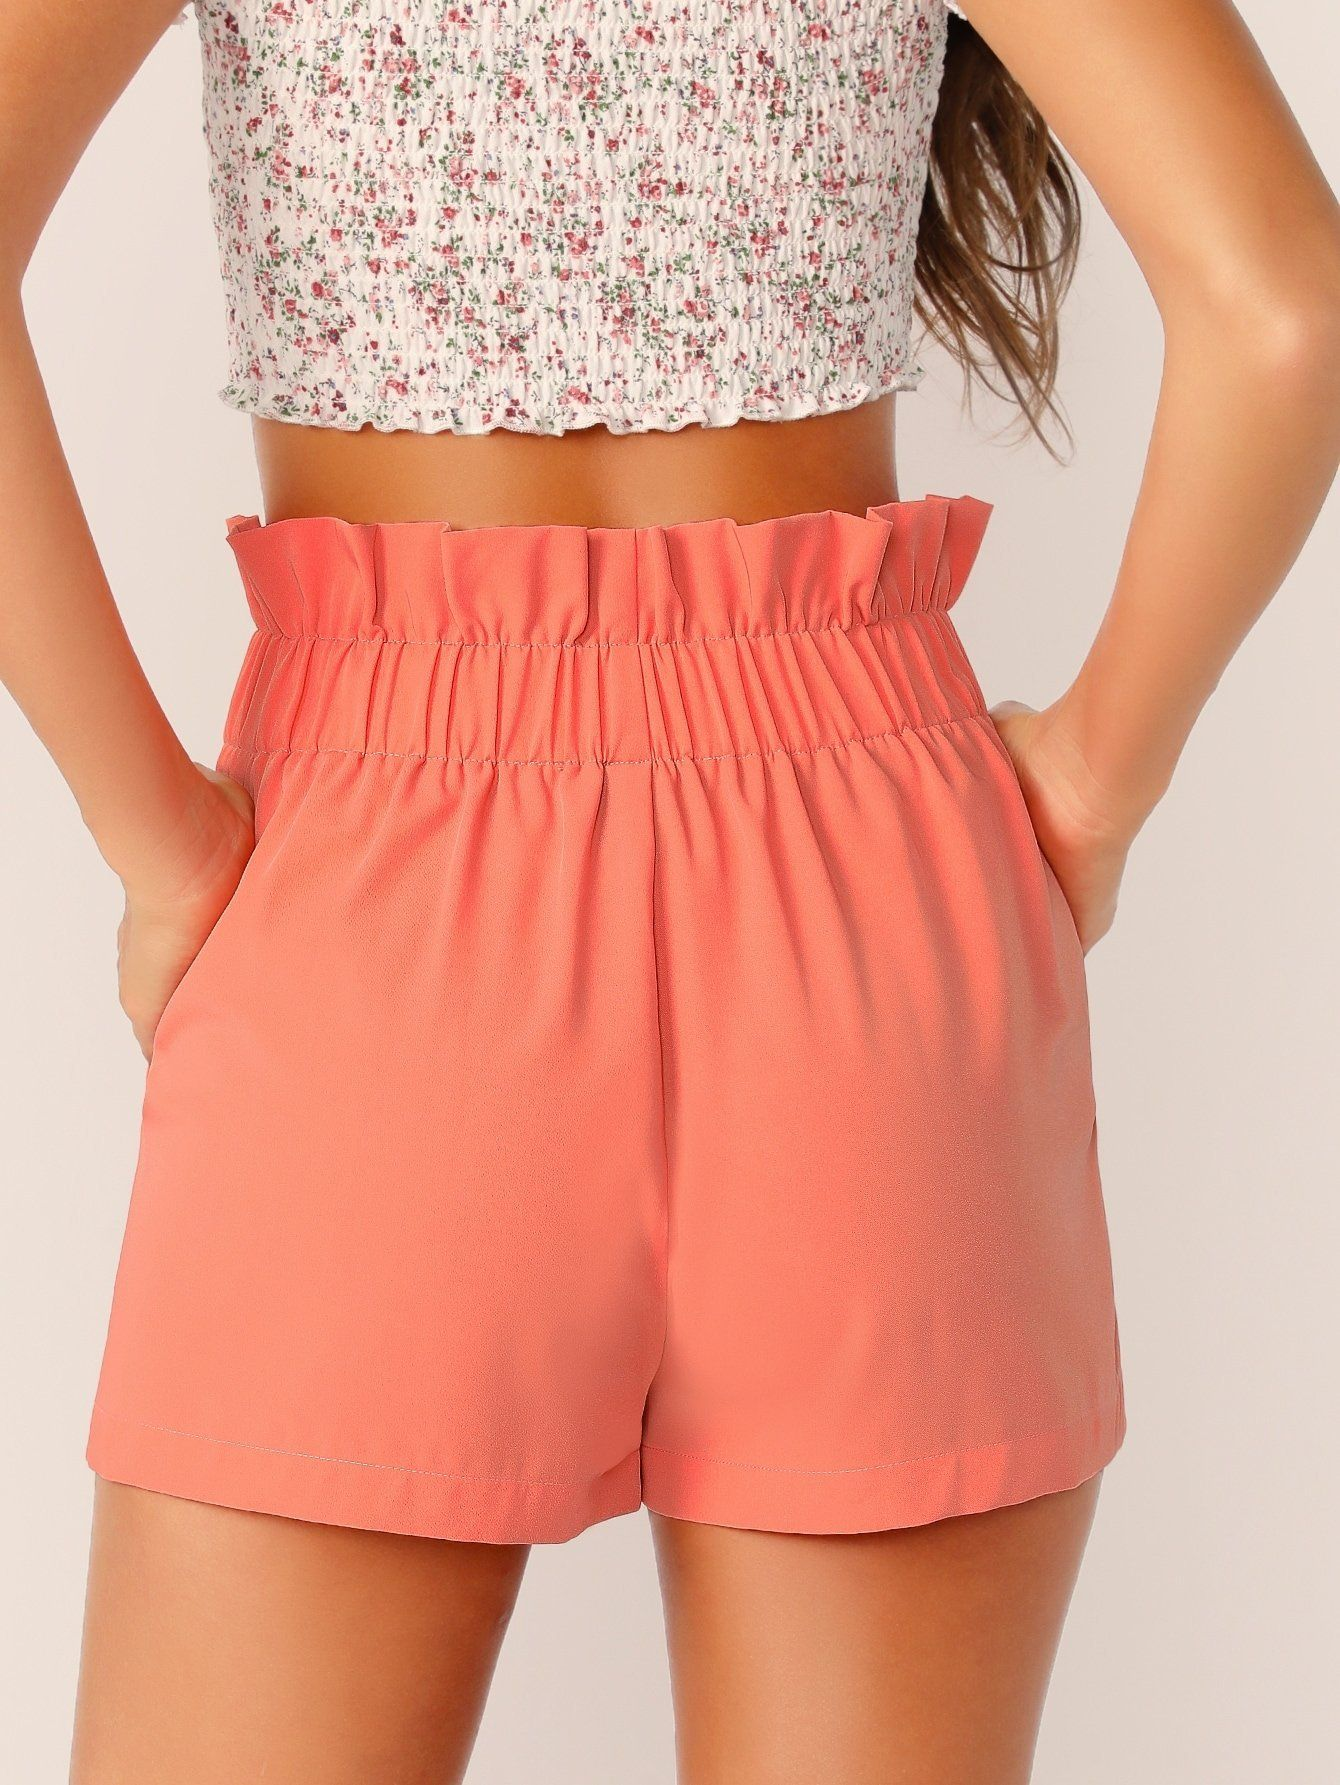 SHEIN Paperbag Lace-up Waist Slant Pocket Shorts #shortslace